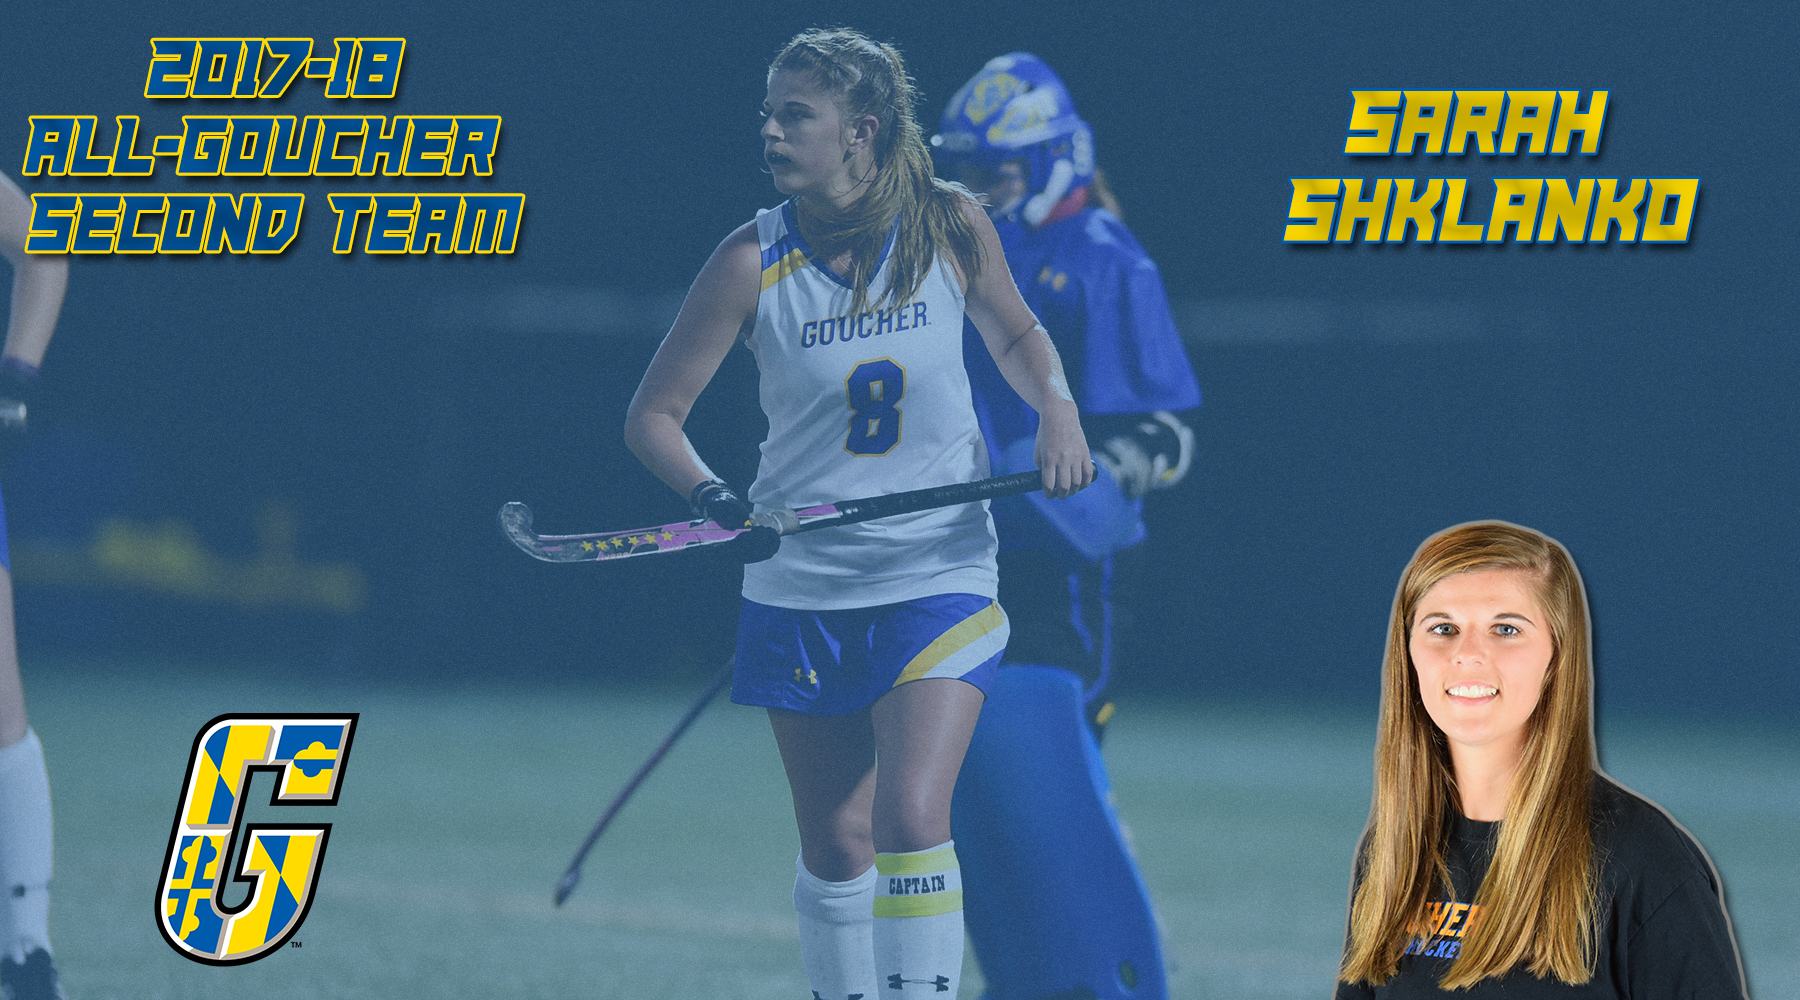 All-Goucher Second Team Selection: Field Hockey's Sarah Shklanko